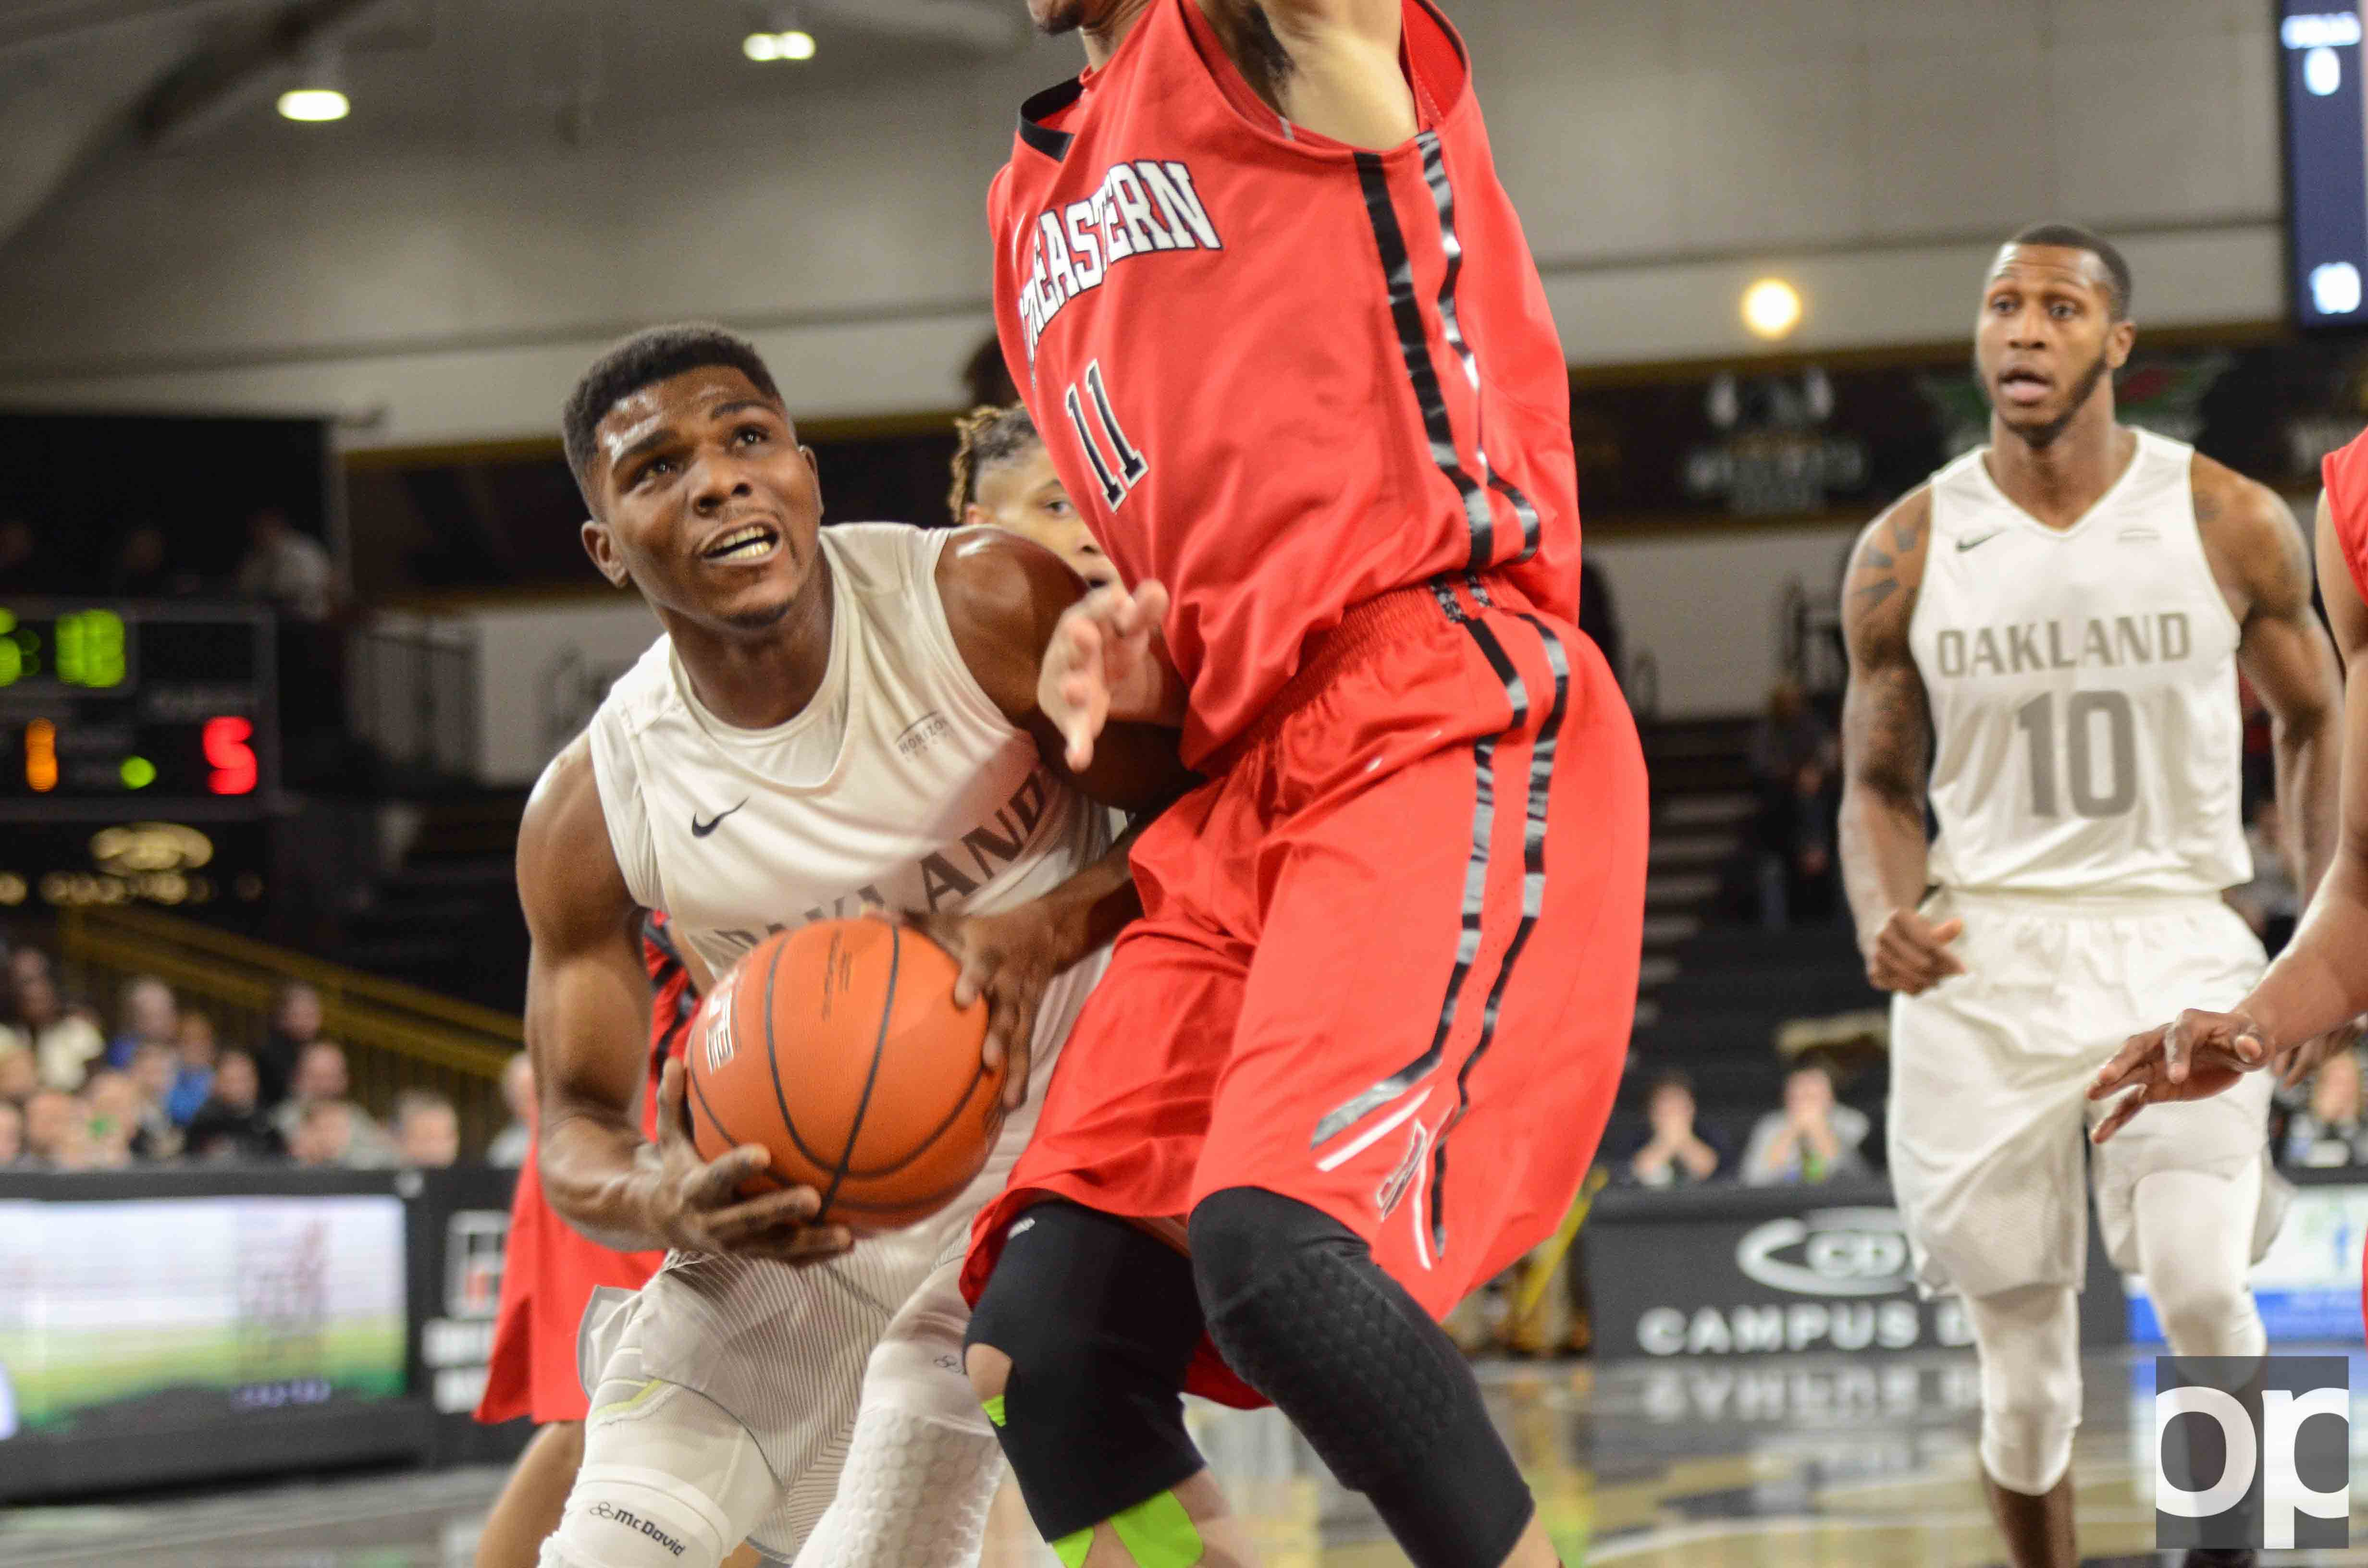 Oakland lost against Northeastern  61-59 in a close battle on the Blacktop at the O'rena Tuesday, Dec. 20.